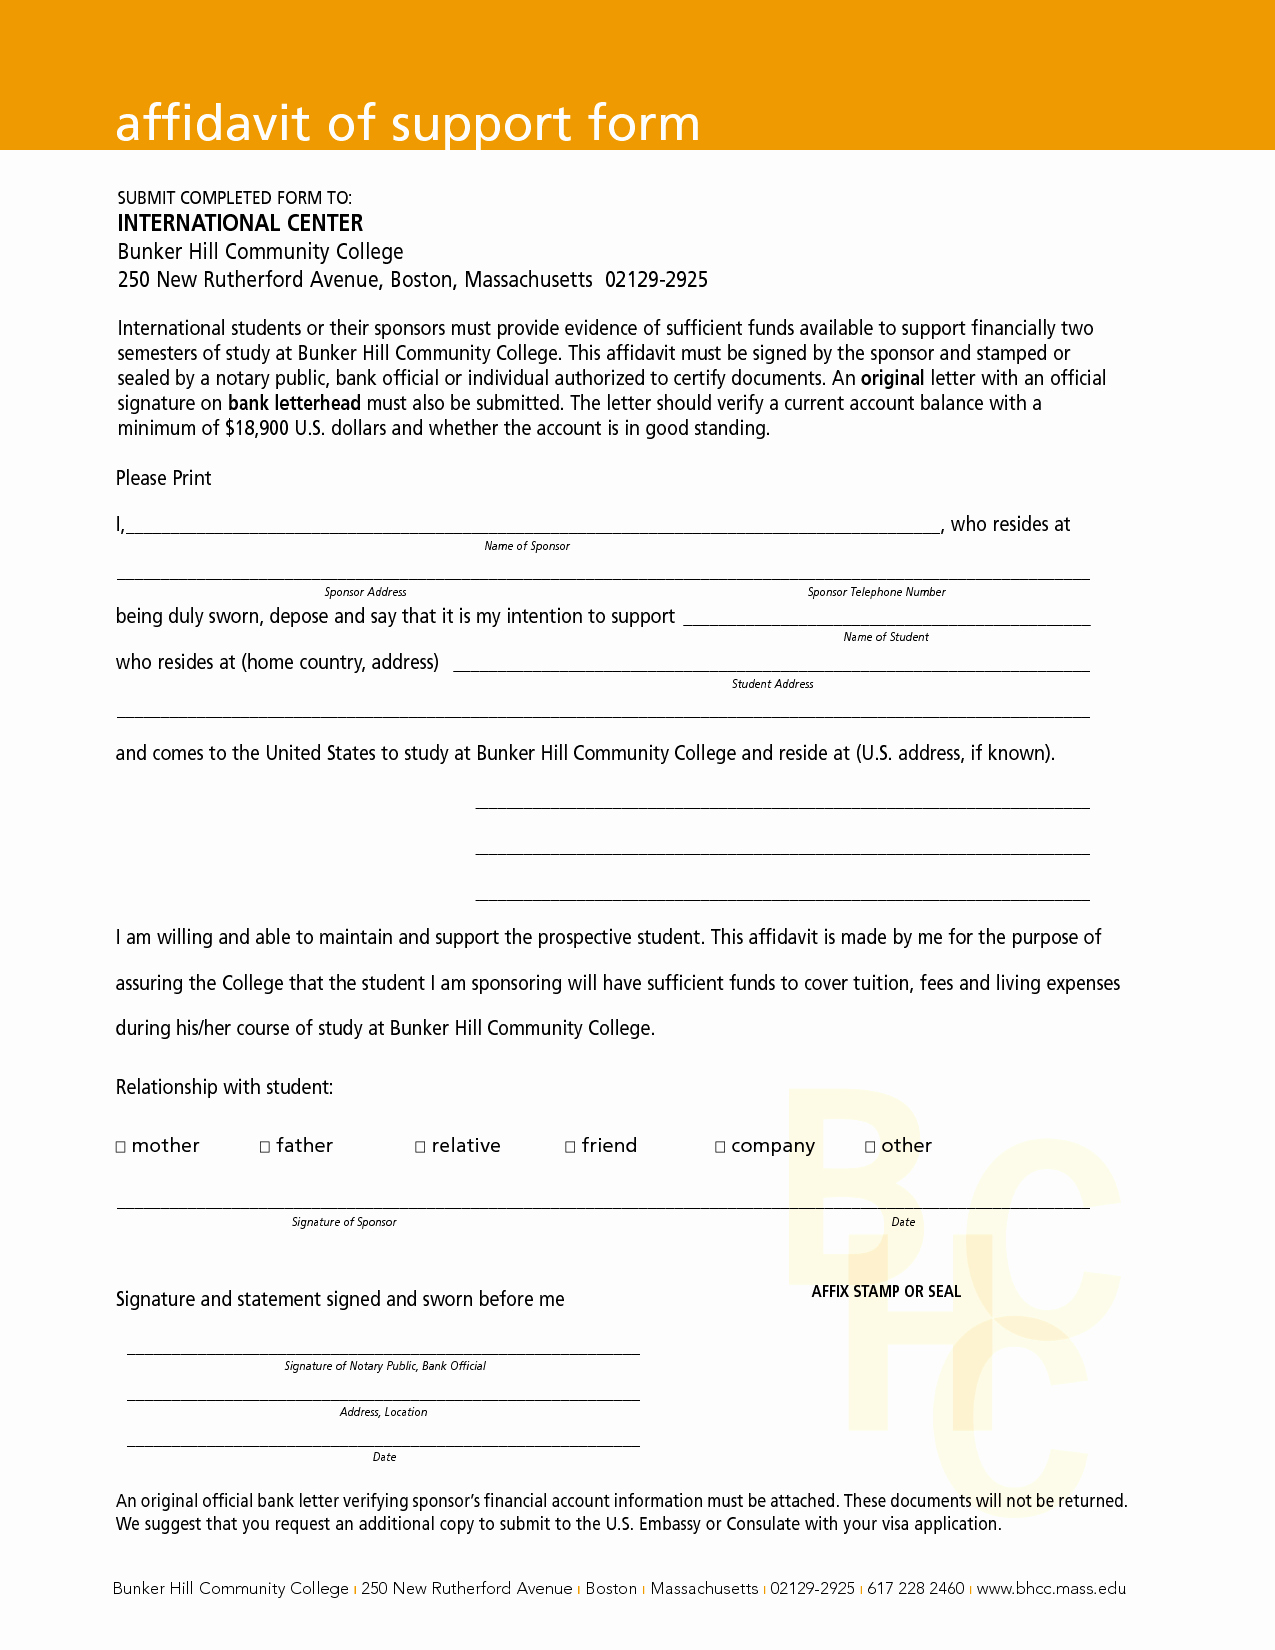 Affidavit Of Support Example Letters Fresh Free Download Affidavit Of Support form with orange Header